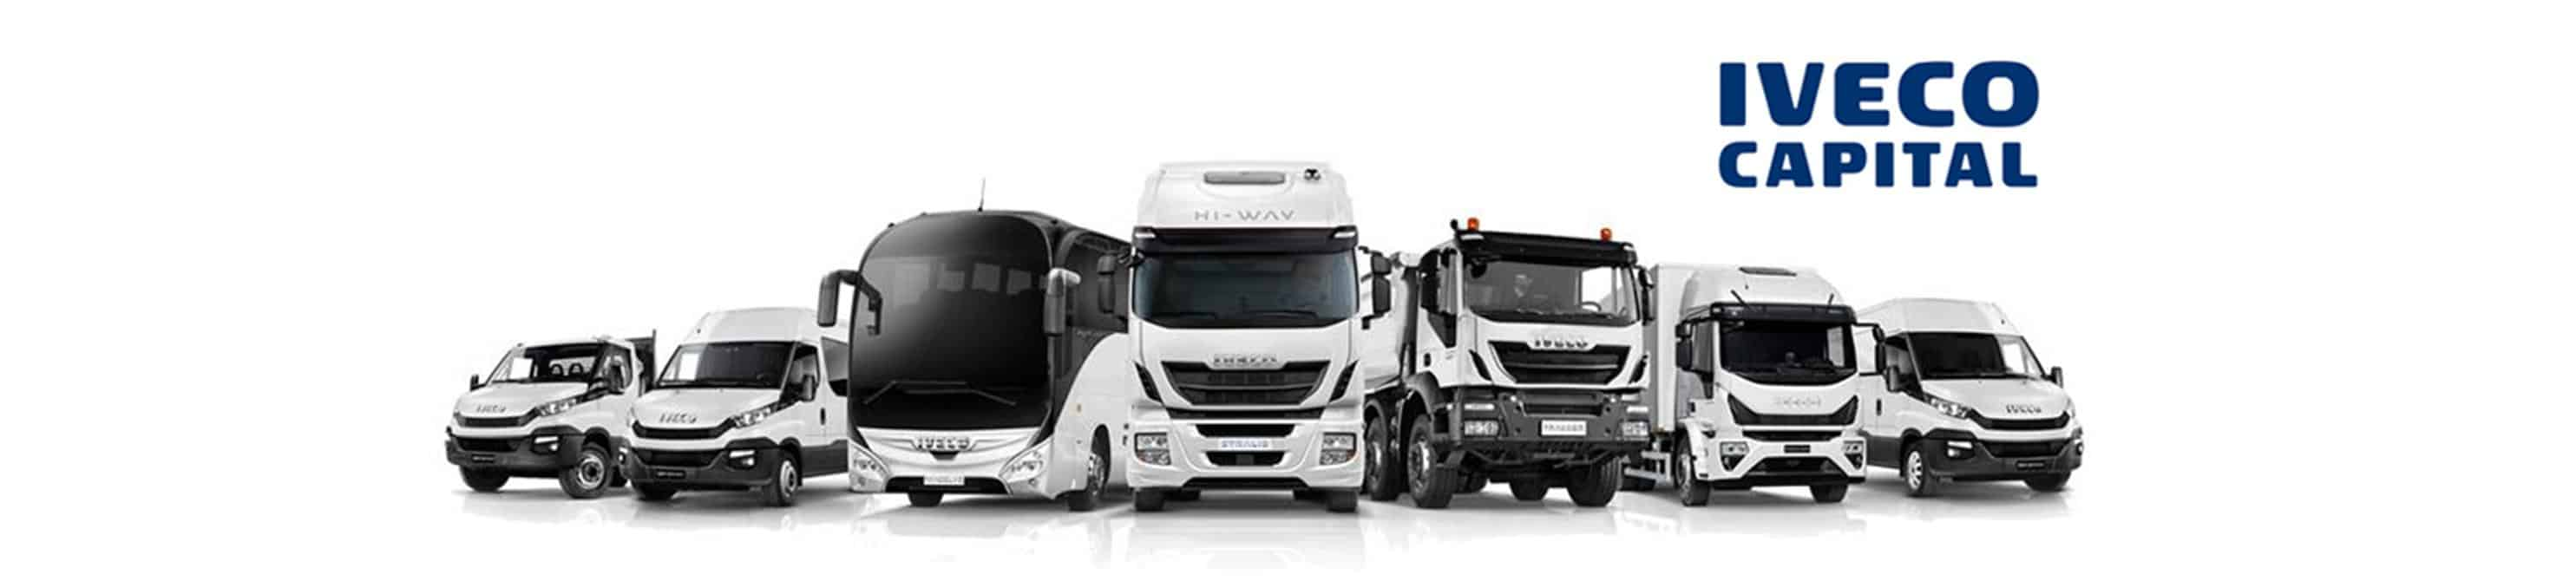 Iveco Capital